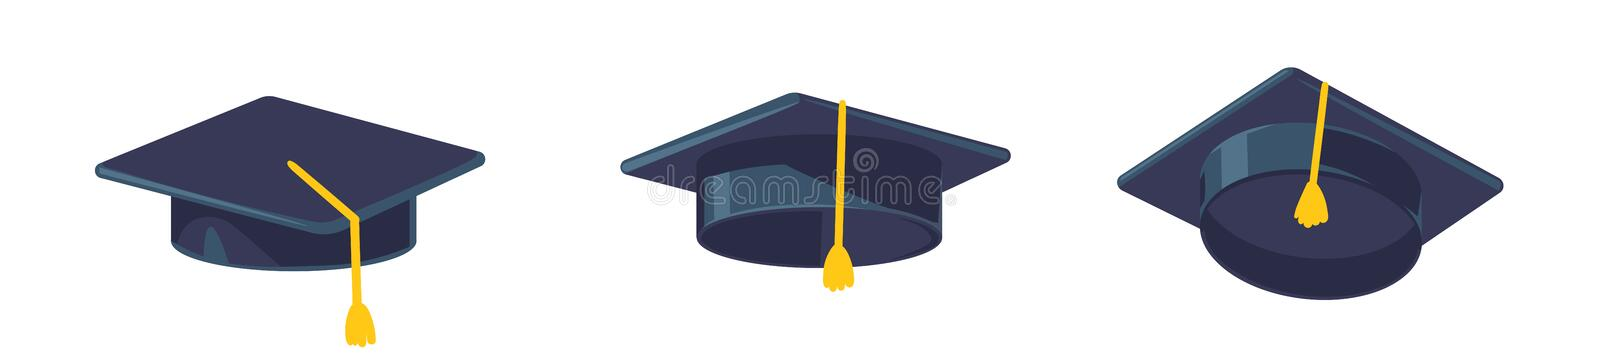 Graduation cap vector isolated on white background, graduation hat with tassel flat icon, academic cap, graduation cap royalty free illustration